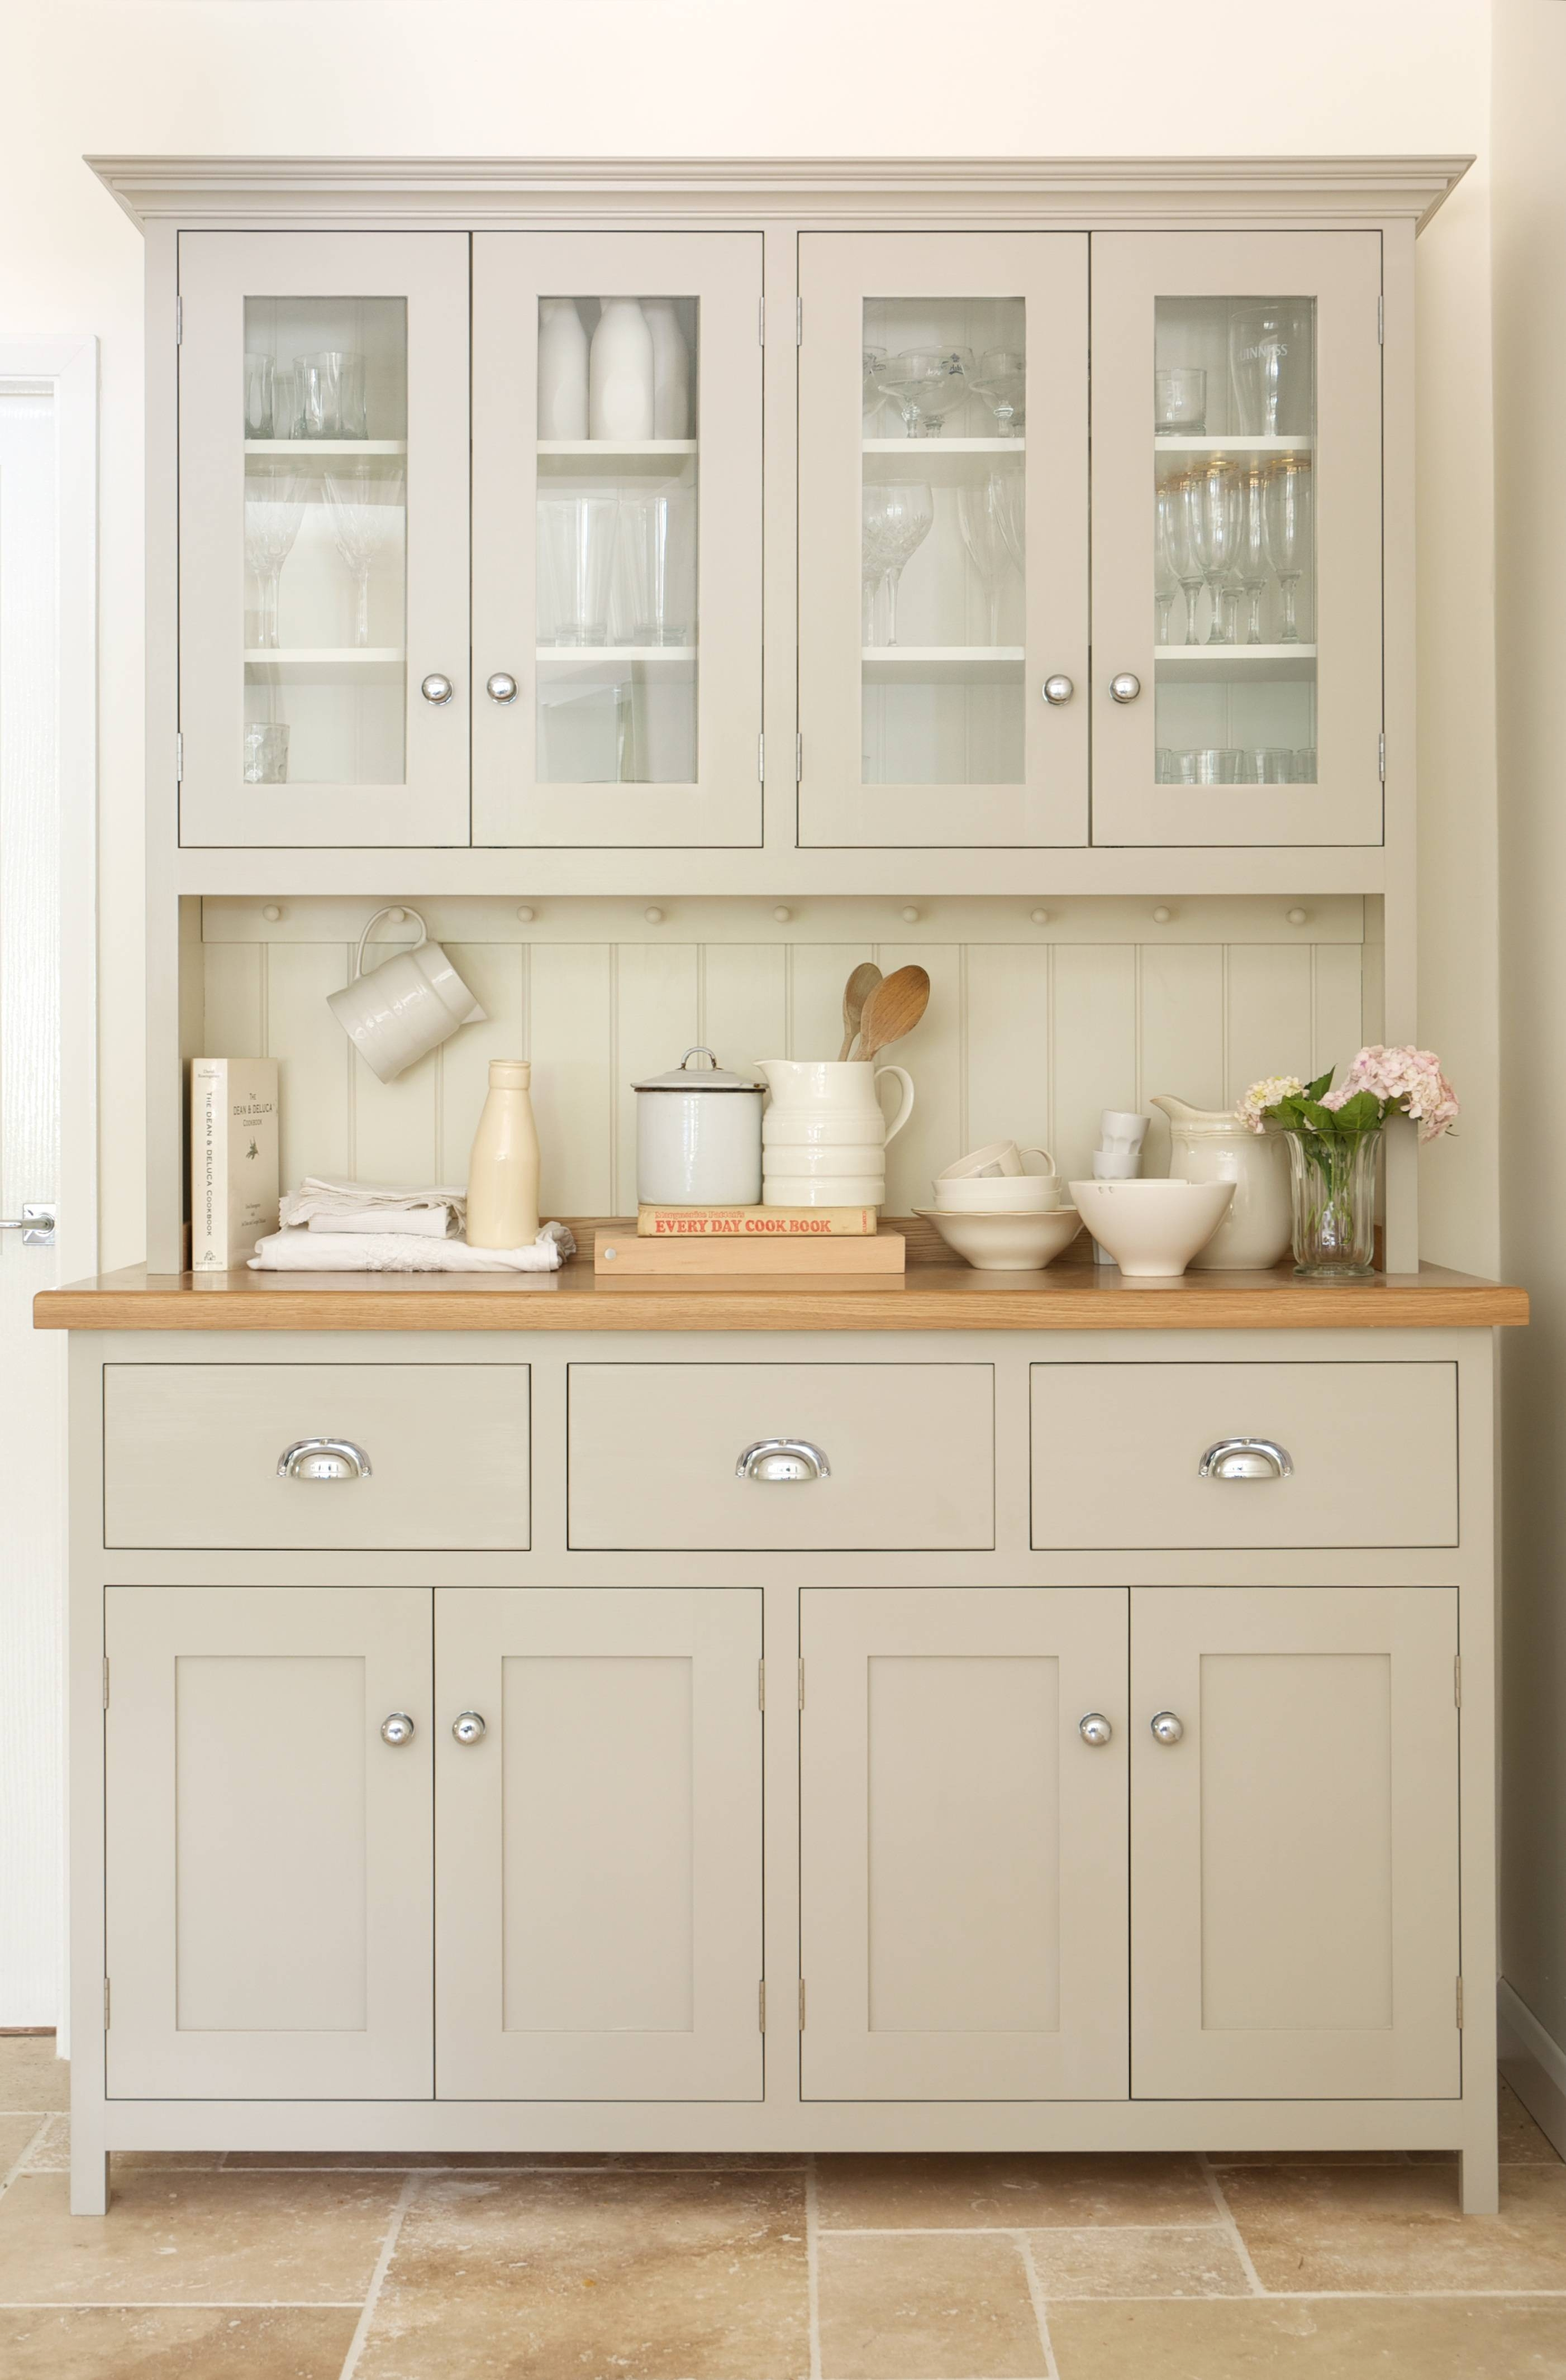 Kitchen Cabinet : Narrow Buffet Table 42 Inch Sideboard Modern Pertaining To Most Popular 42 Inch Sideboards (#6 of 15)